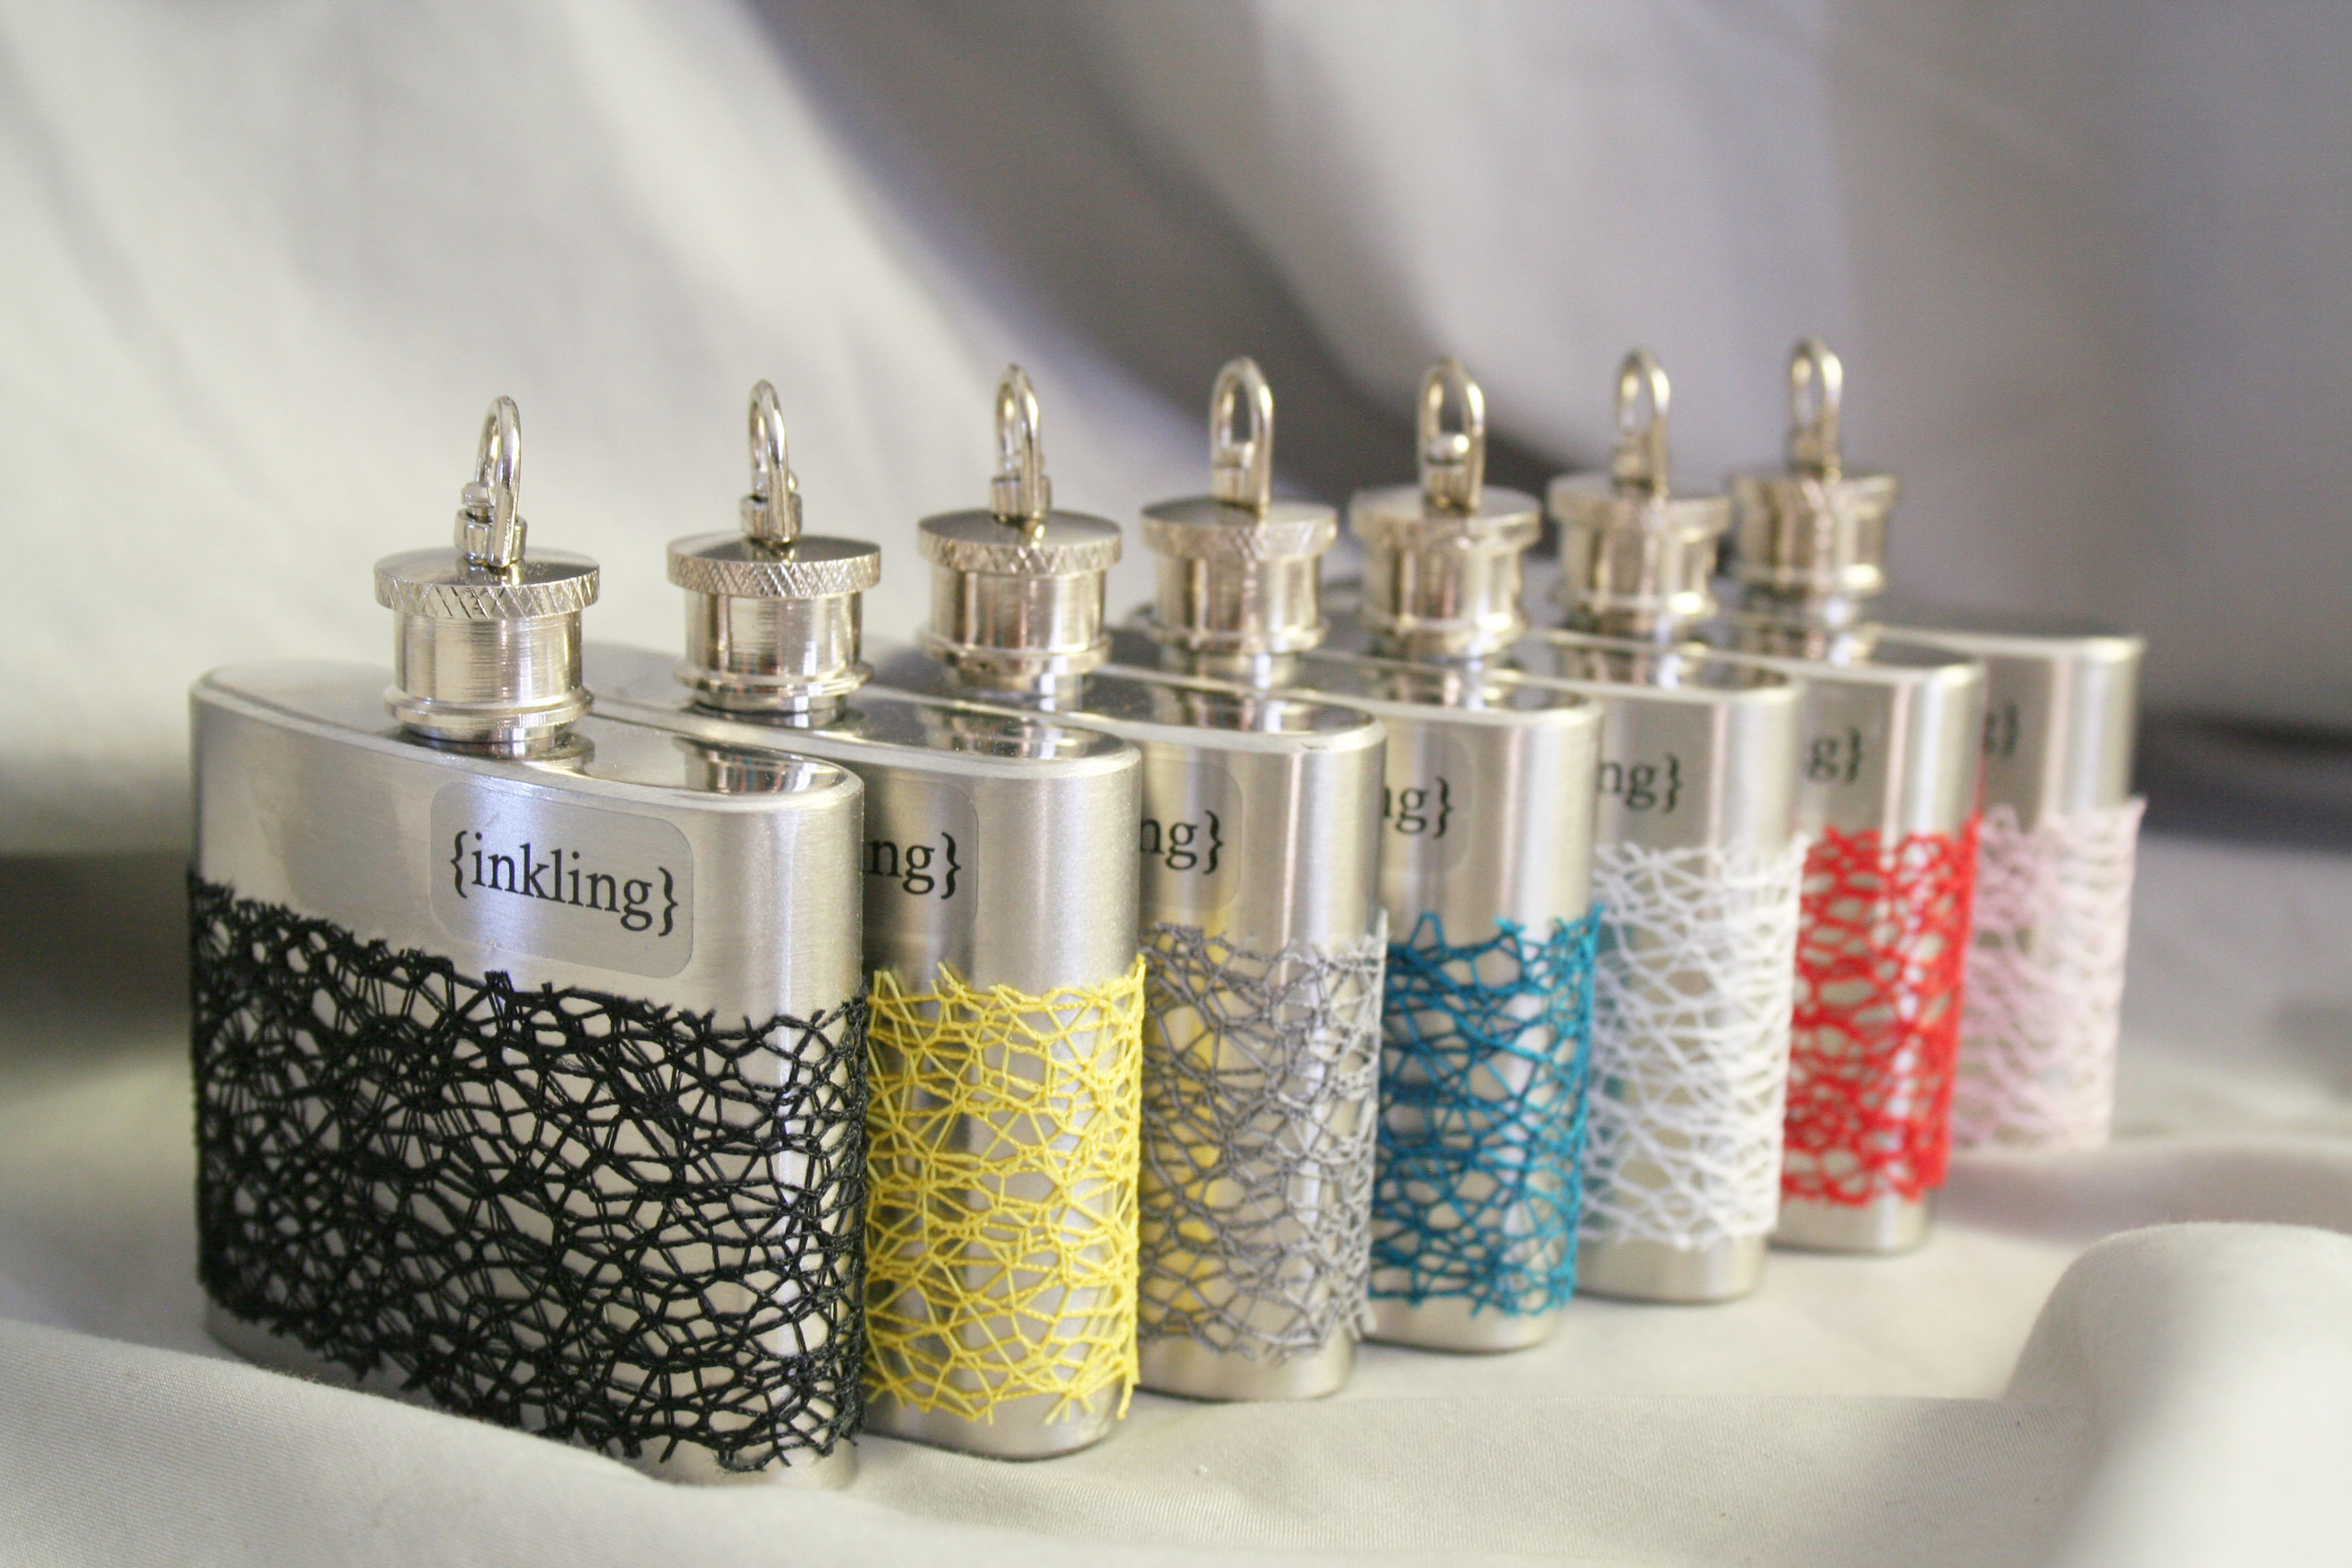 Inkling Scents: High End Frangrance At Reasonale Prices #reviews #Giftguides